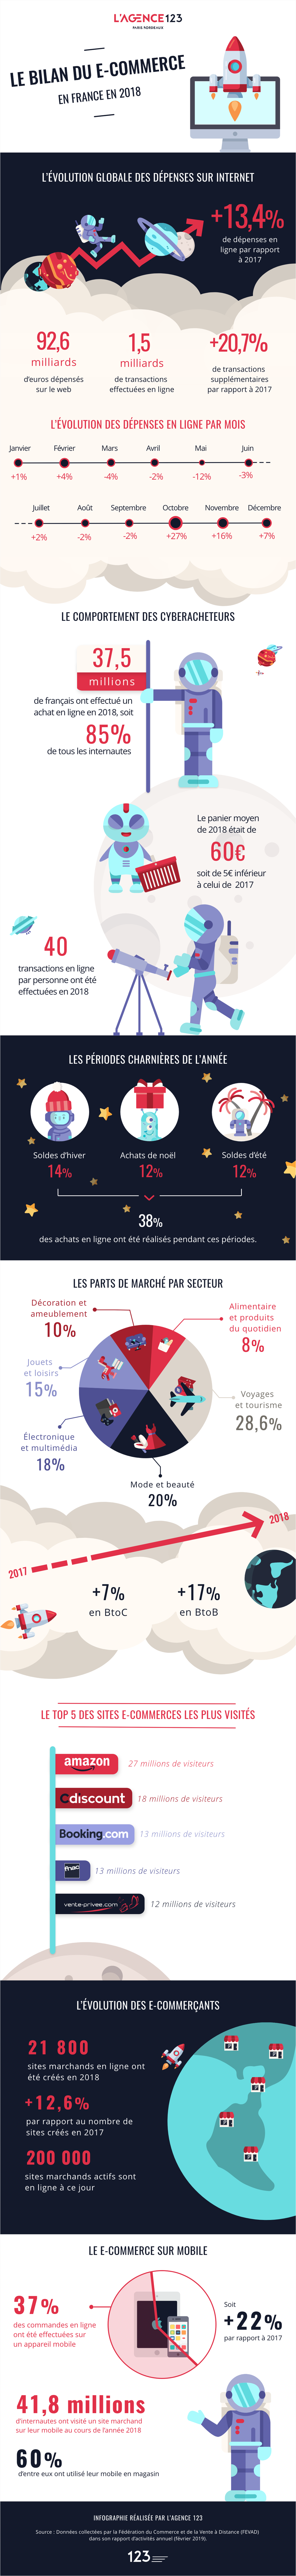 lagence123 bilan chiffres ecommerce 2018 infographie